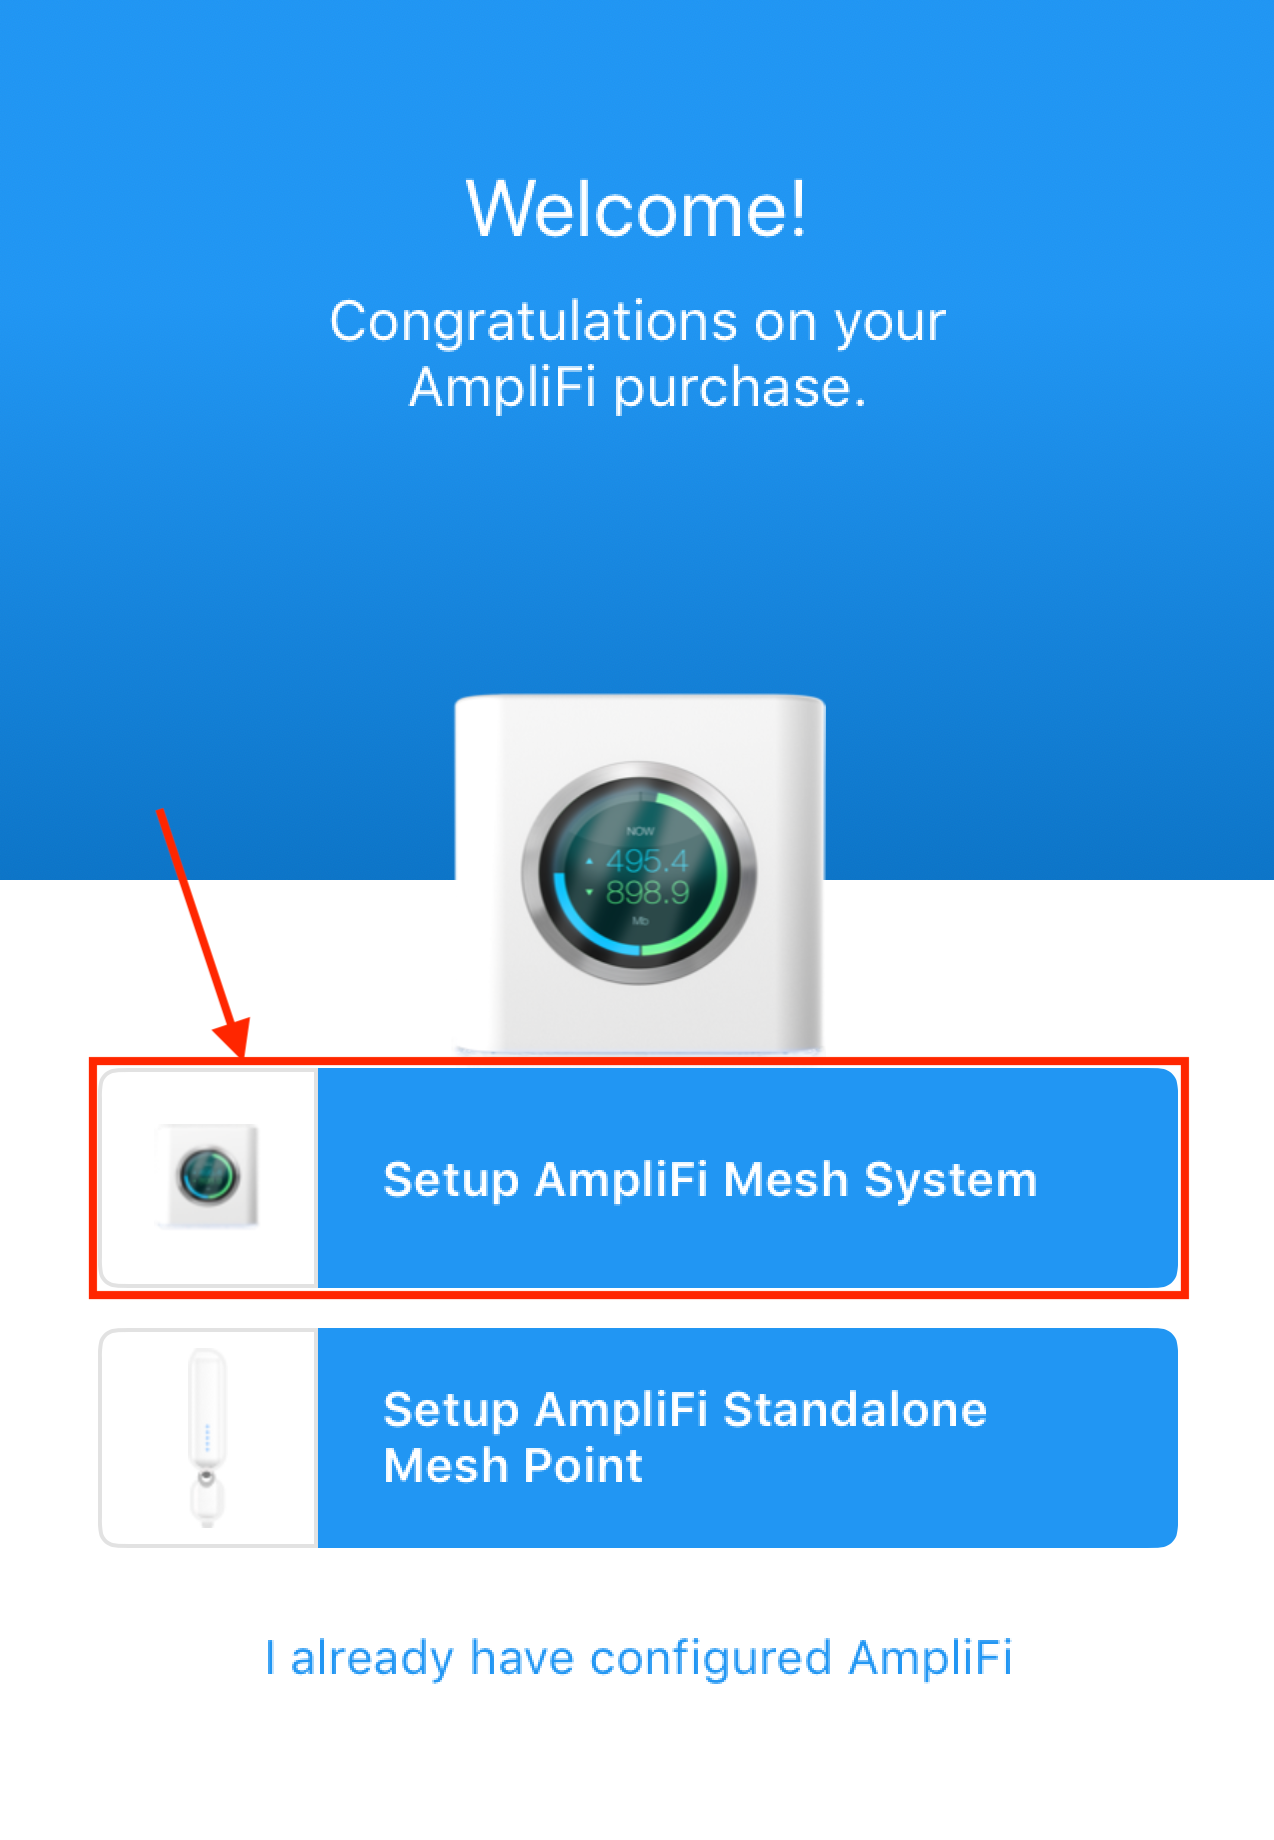 Amplifi Modem Router Hook Up Diagram Free Download Wiring Schematic Follow The Instructions In App To Complete Setup And Configuration Of Network